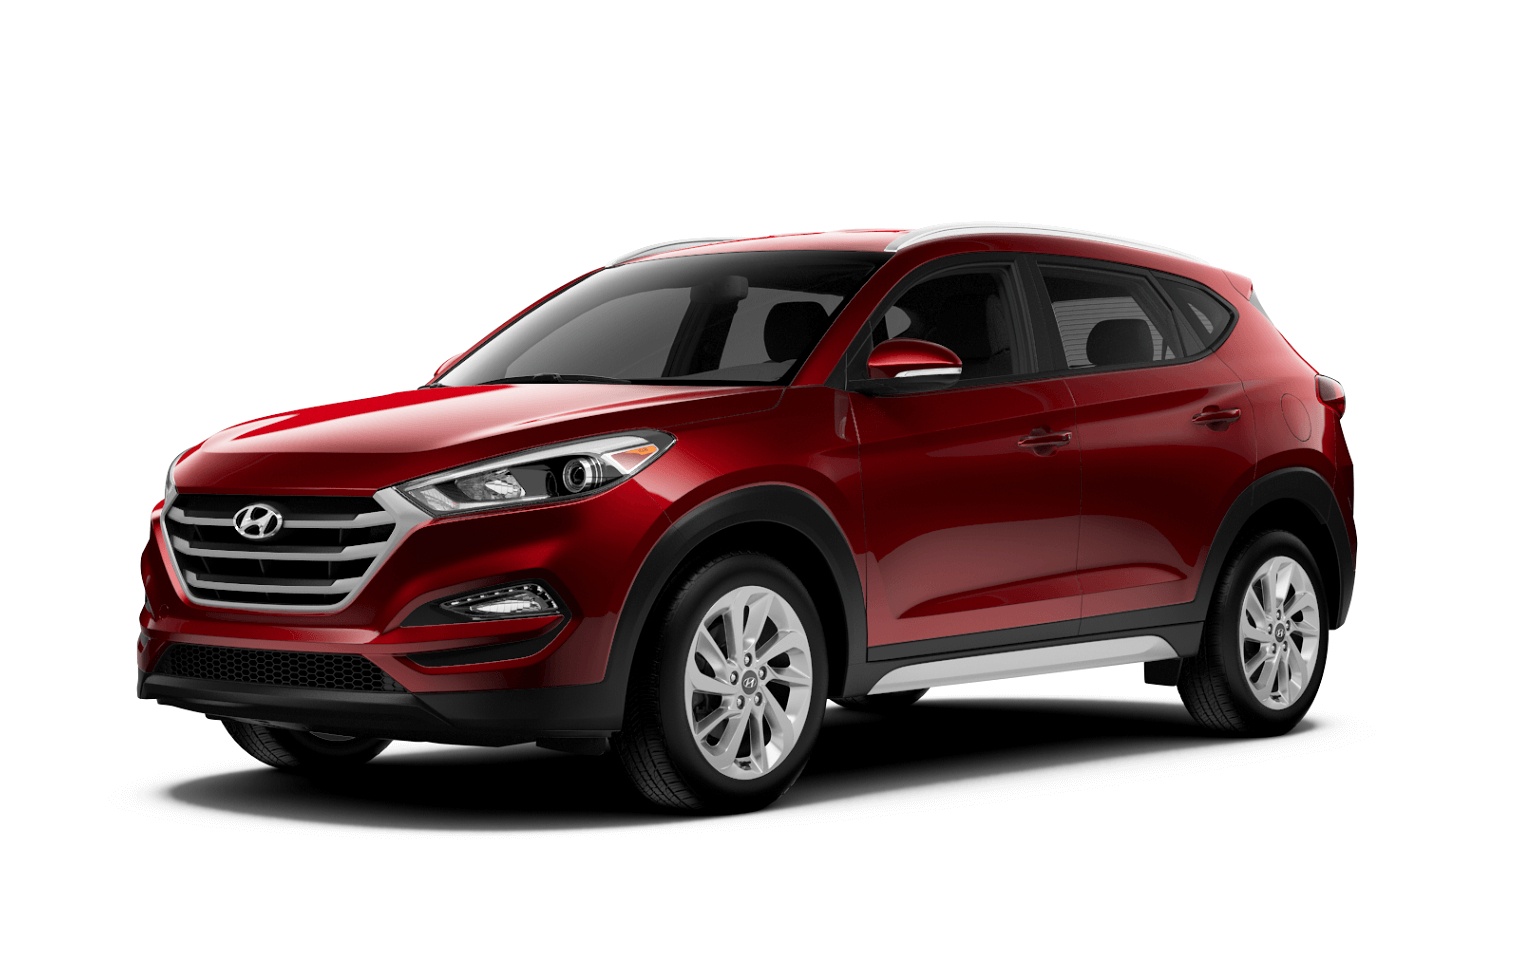 2019 Hyundai Tucson SEL Gemstone Red